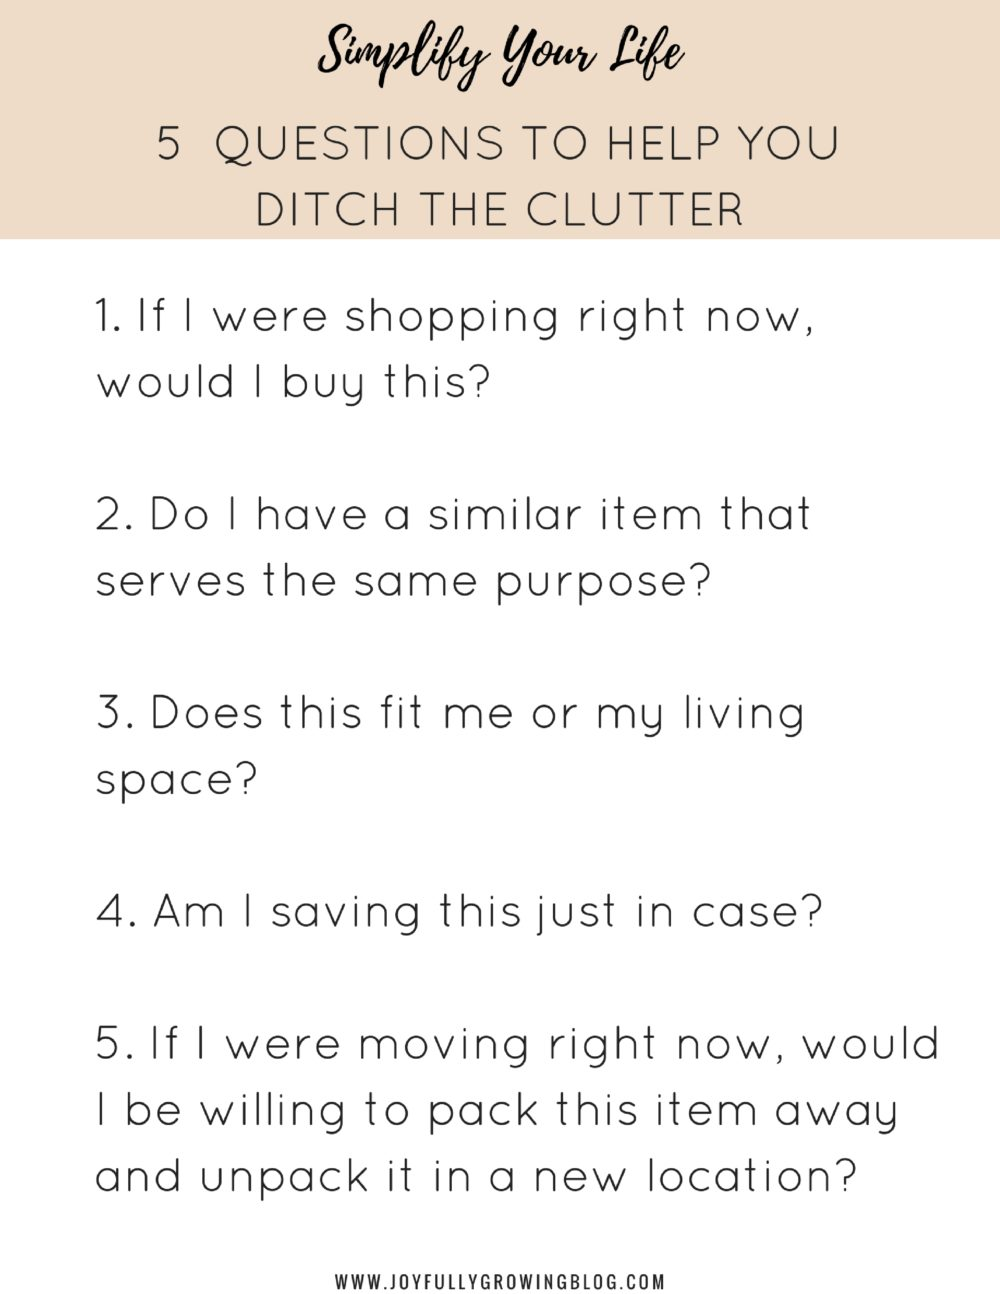 5 Questions to Help You Ditch the Clutter | Simplify Your Life - Part 1